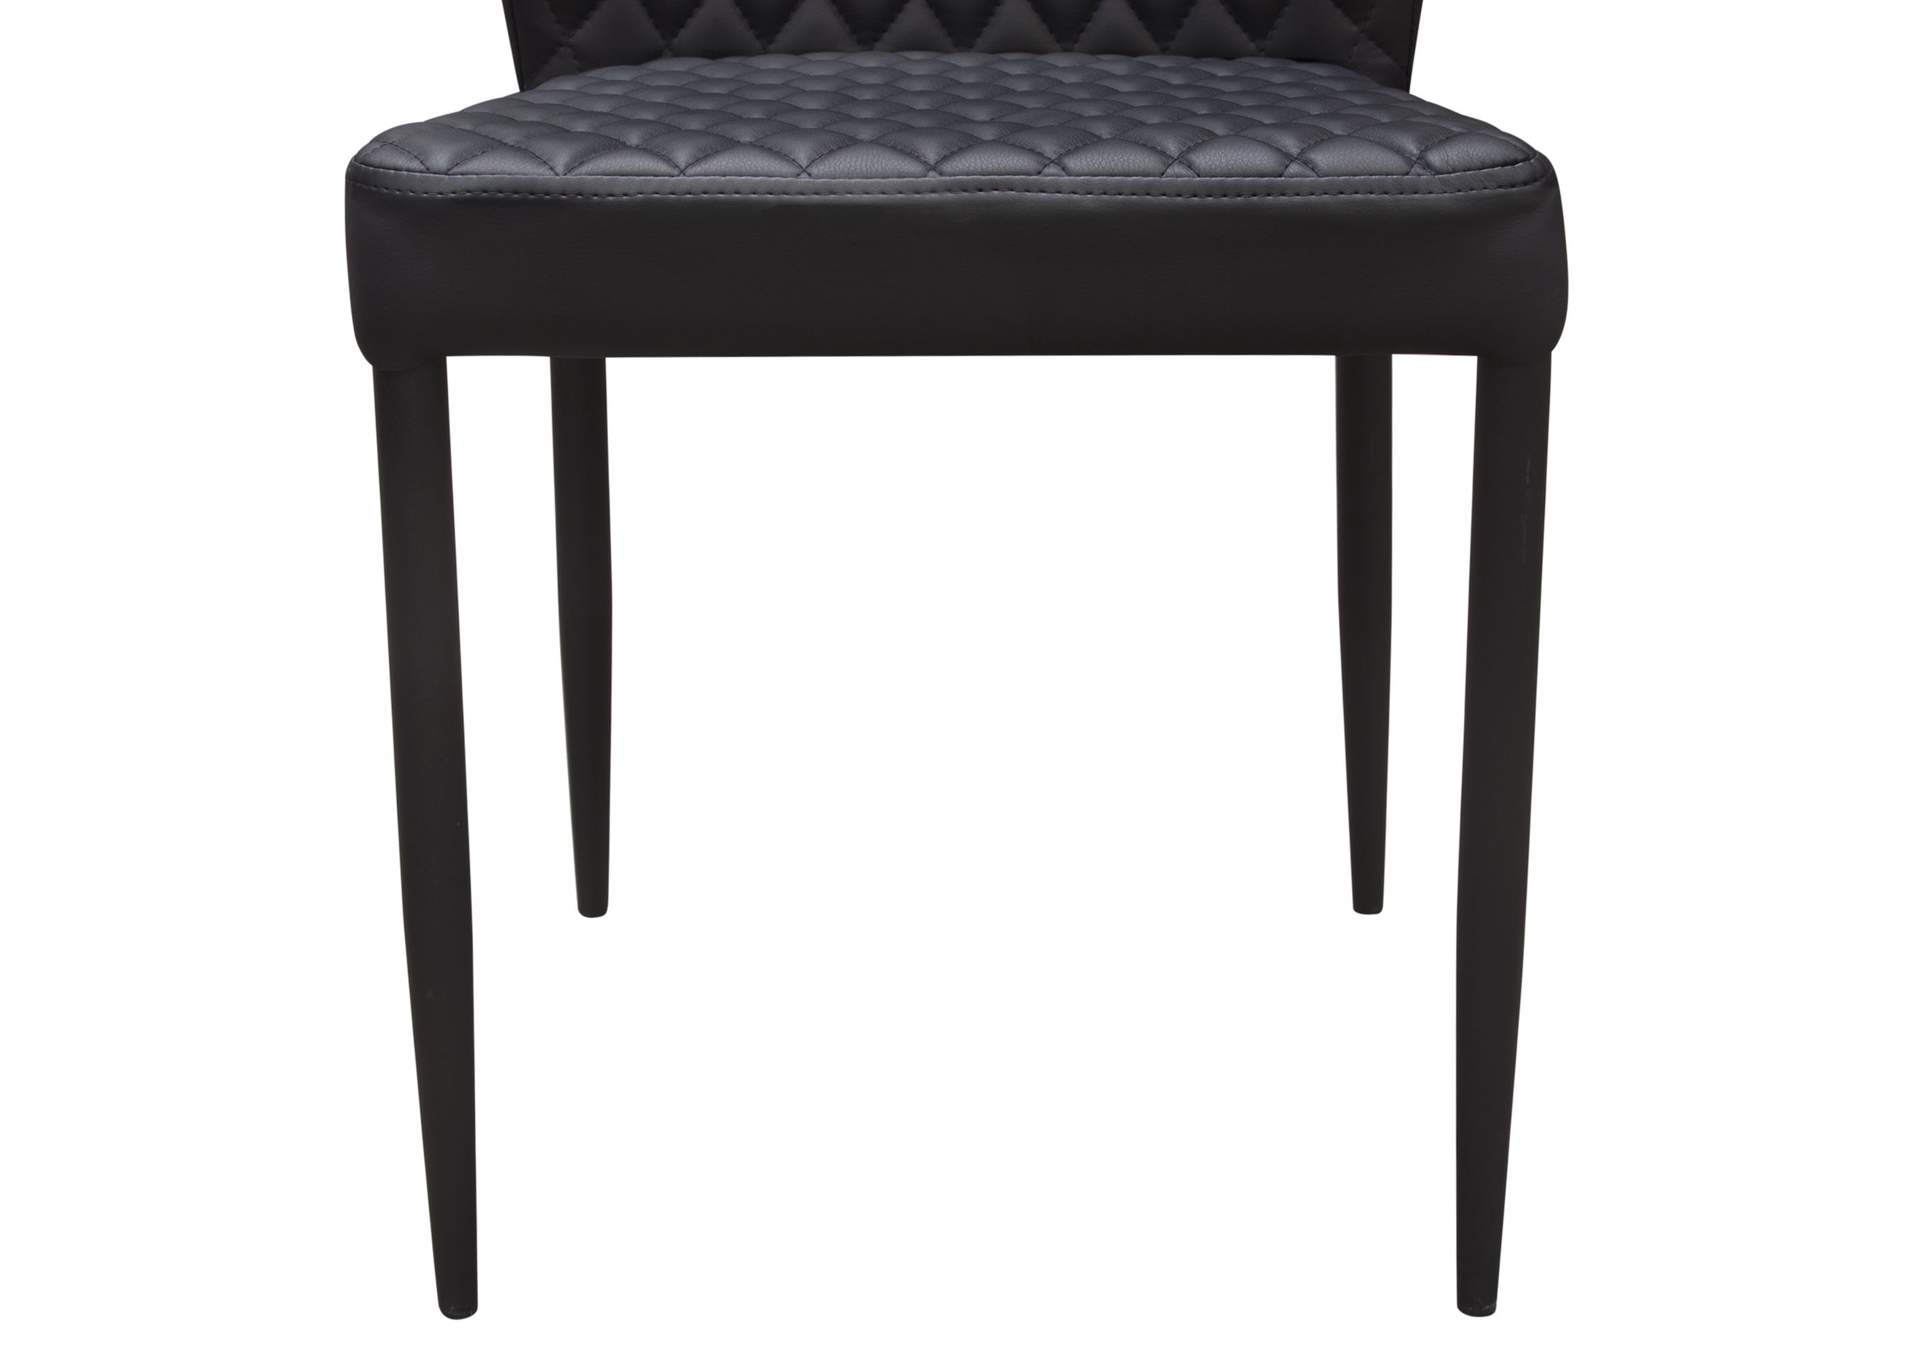 Milo Black Diamond 4-Pack Dining Chairs  w/Black Powder Coat Legs,Diamond Sofa